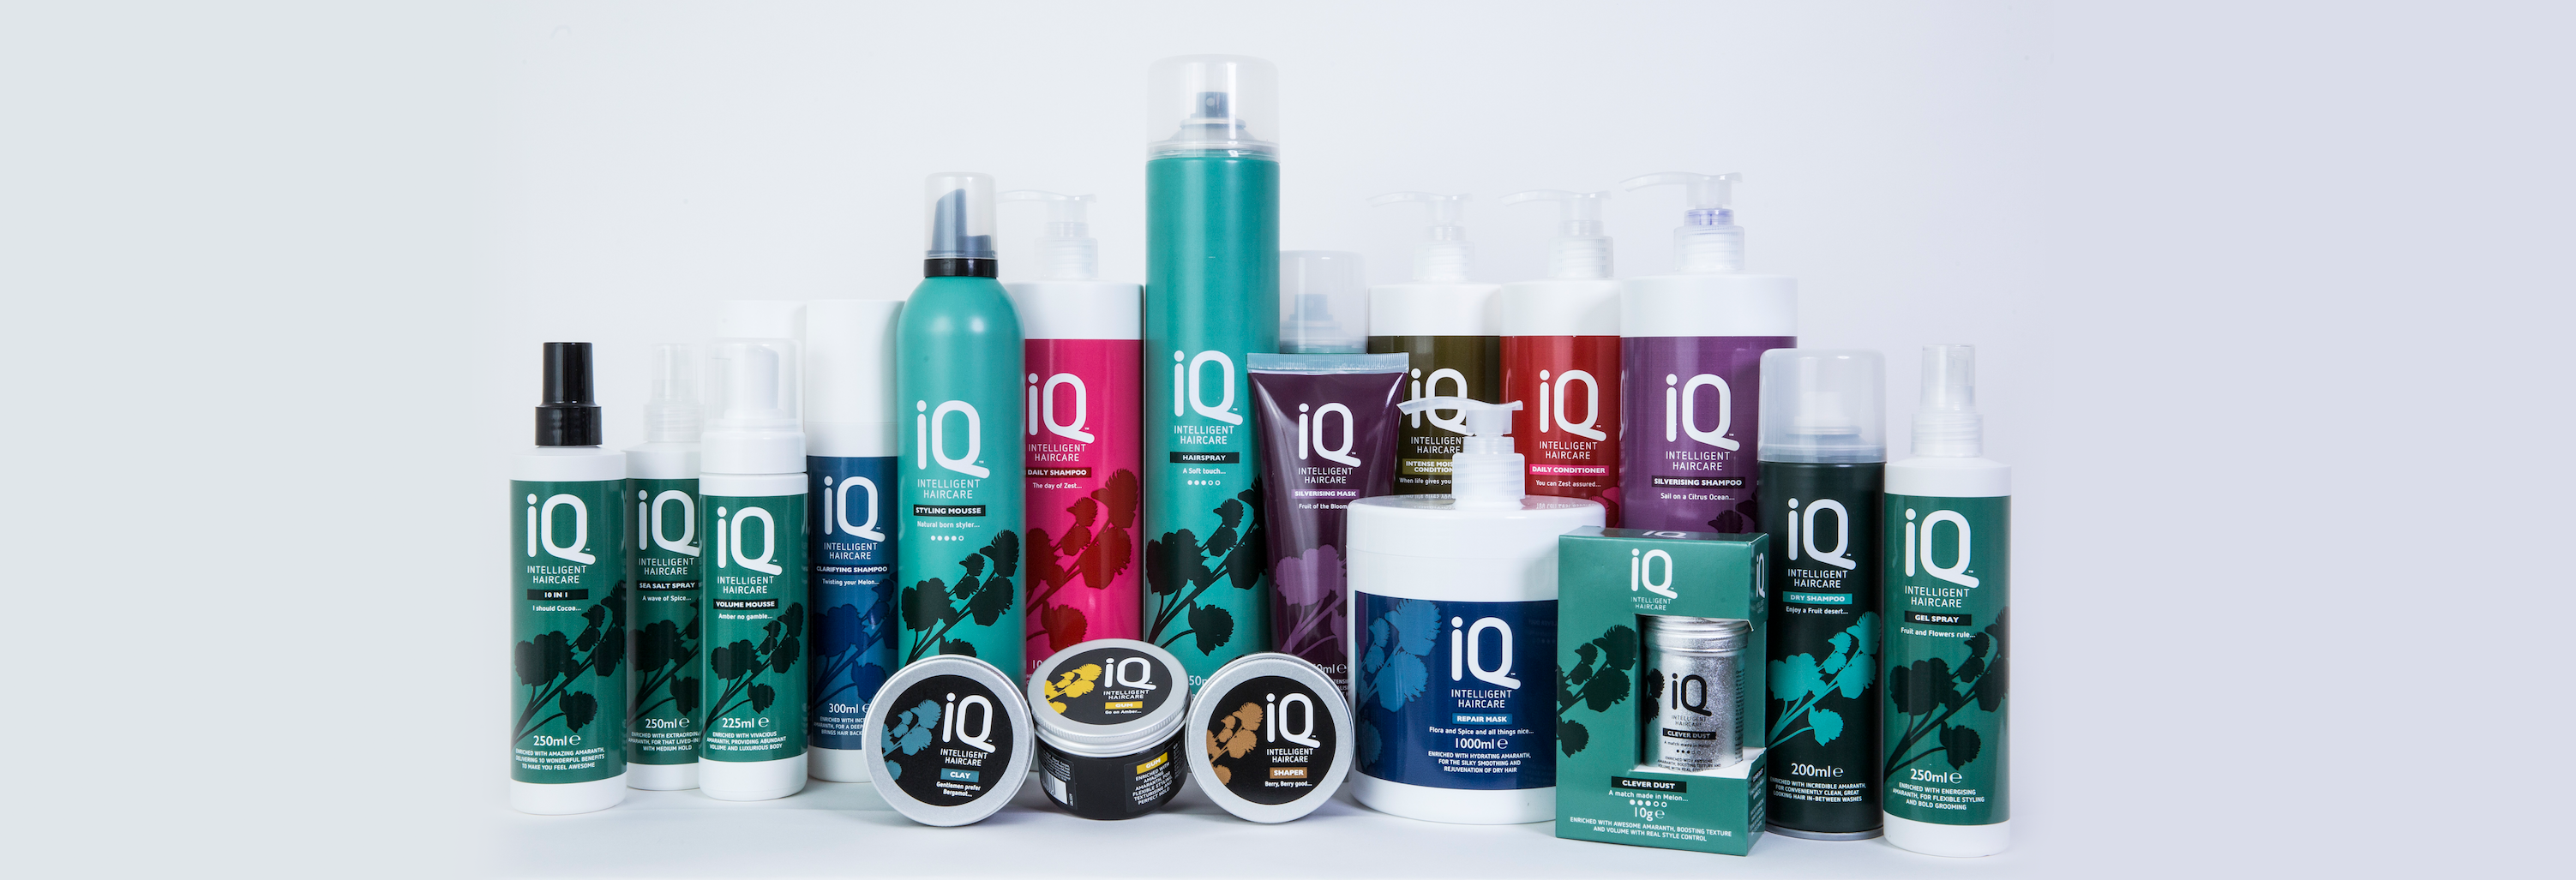 About Iq Hair Professional Shampoo Conditioner Amp Hair